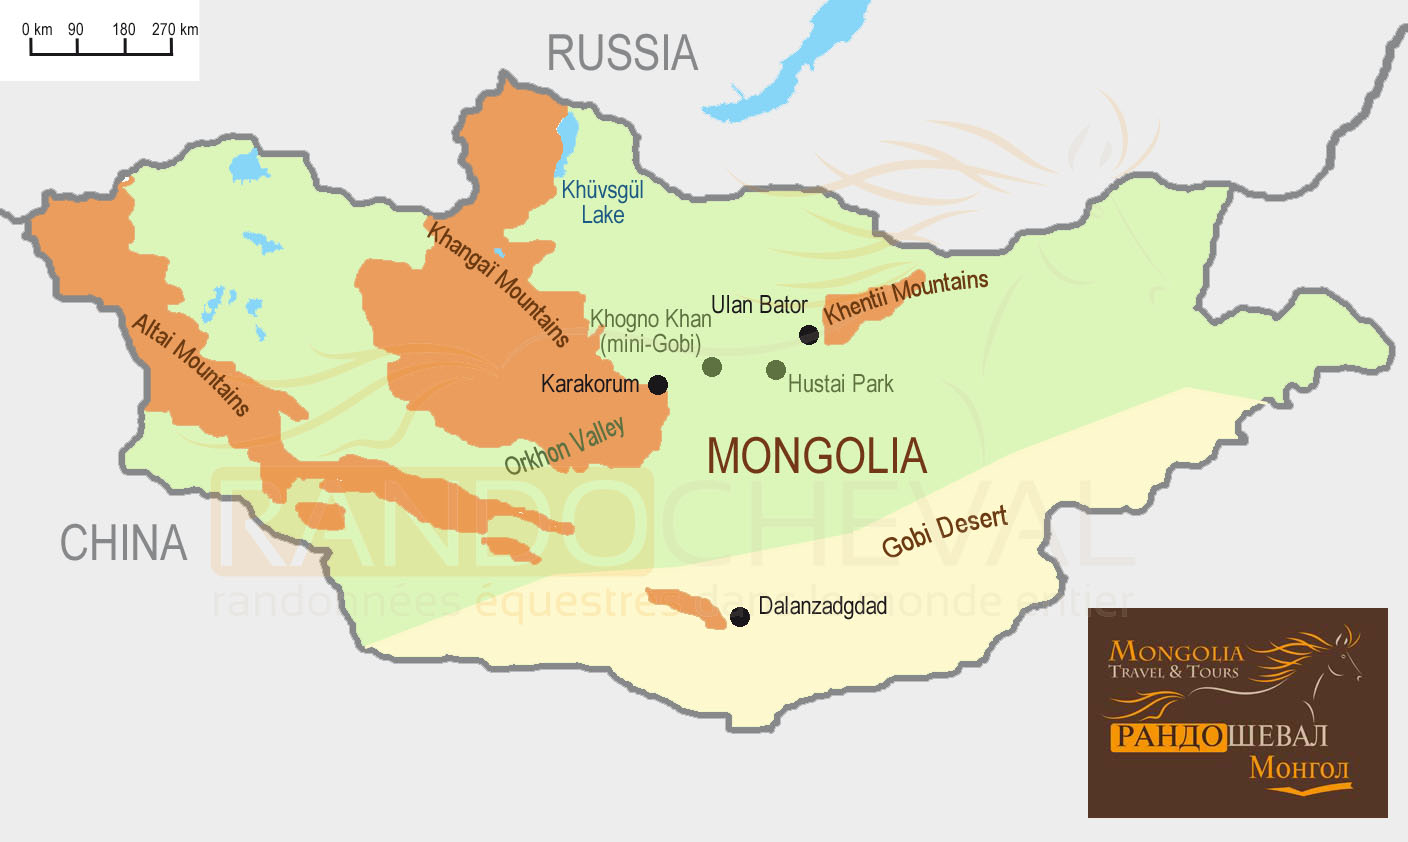 Map of Mongolia Mongolia Travel and Tours